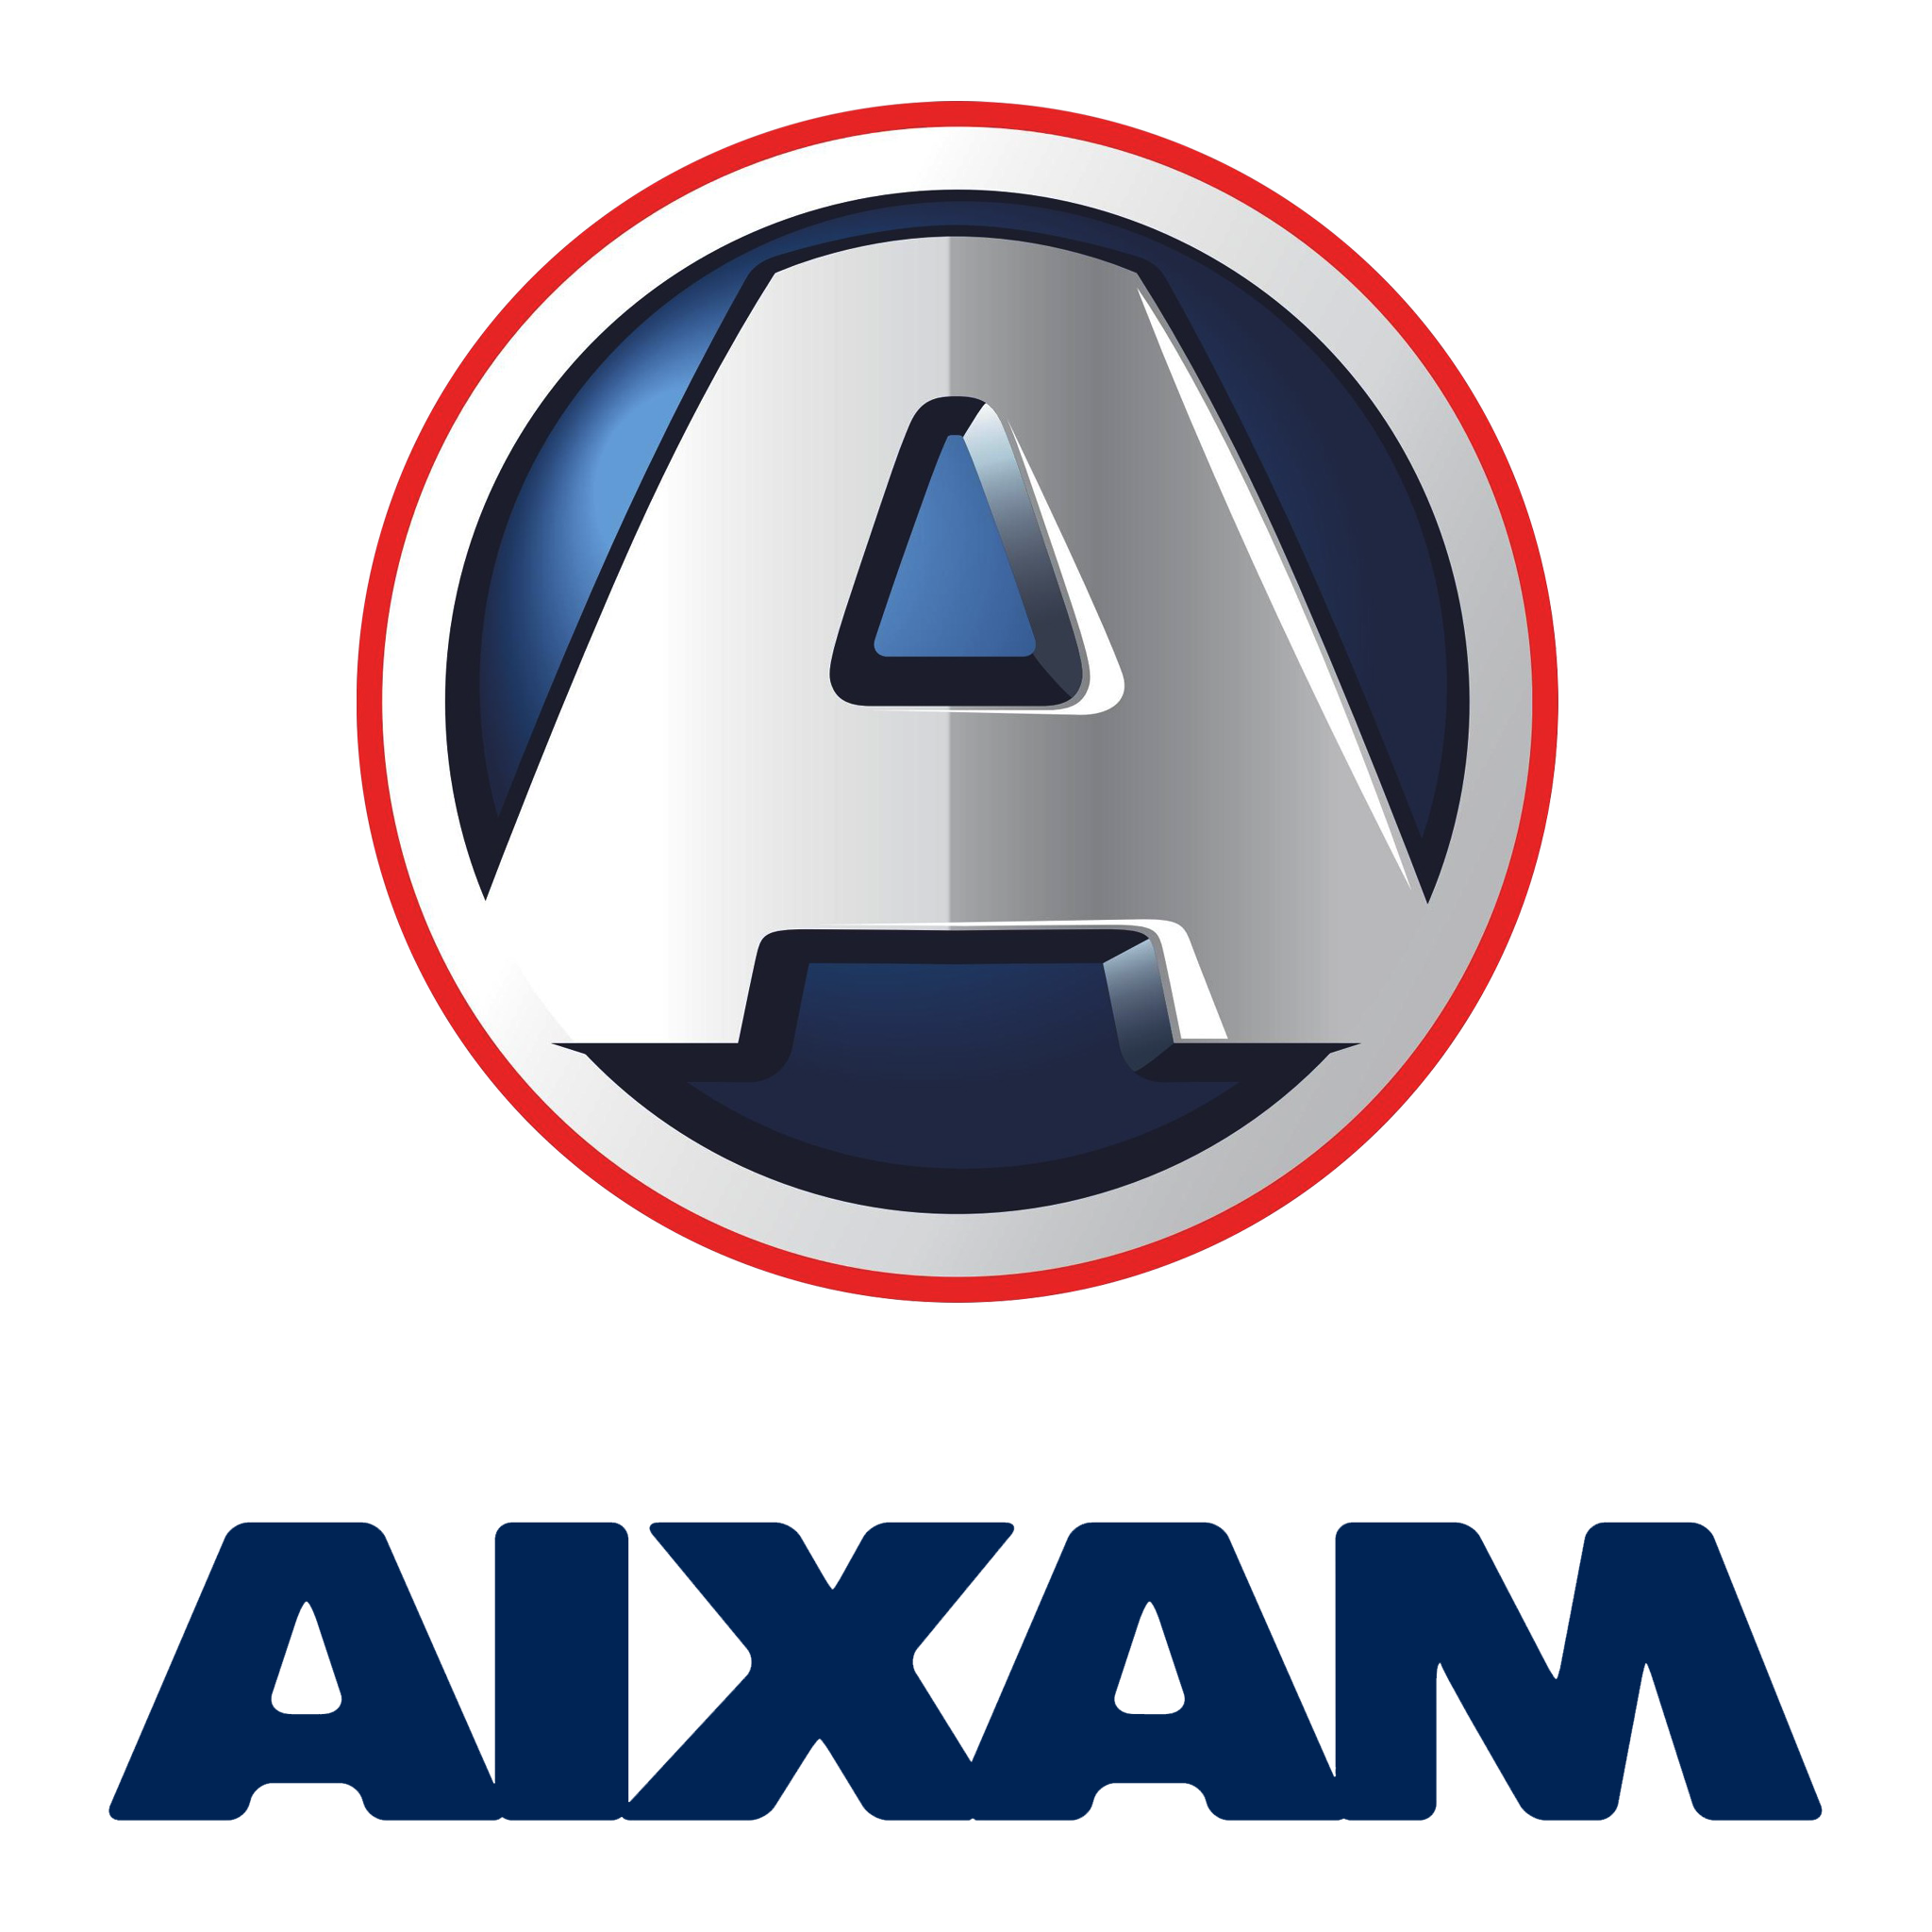 Aixam Logo, HD Png, Meaning, Information | Carlogos.org